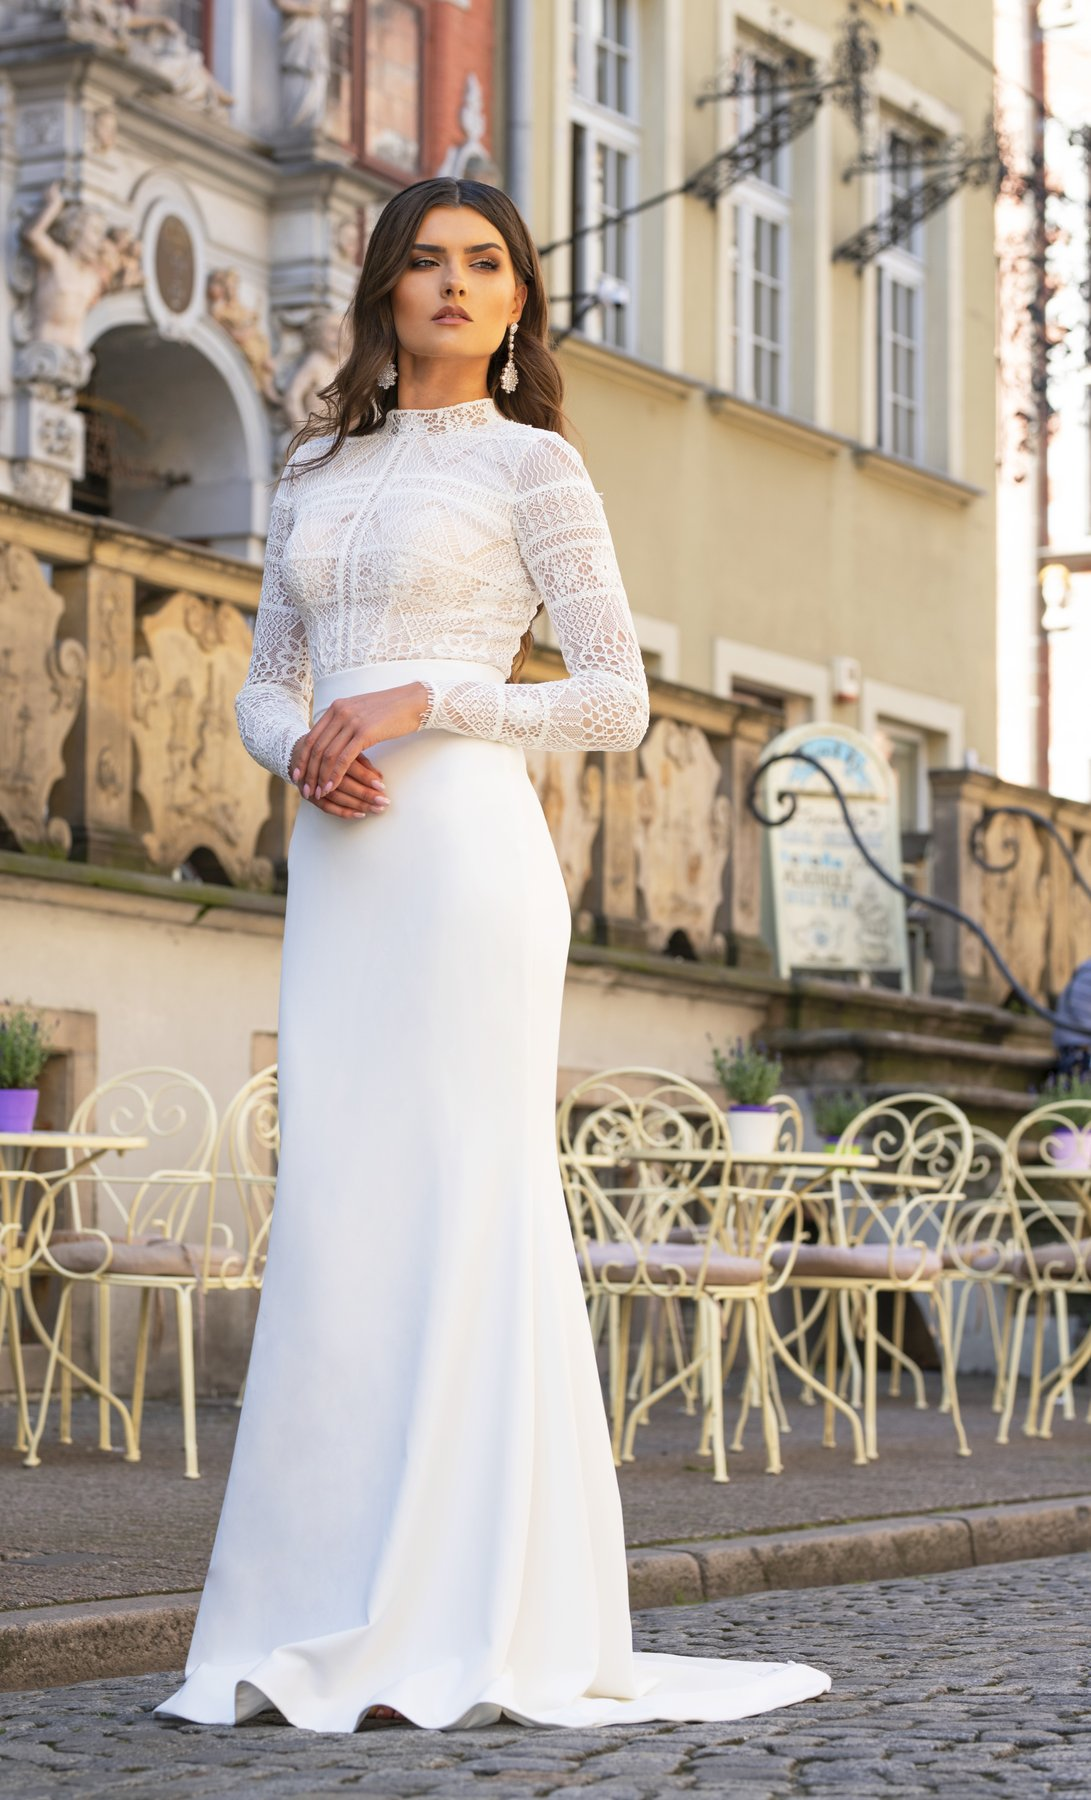 https://maximabridal.ca/collections/euphoria/products/yvette